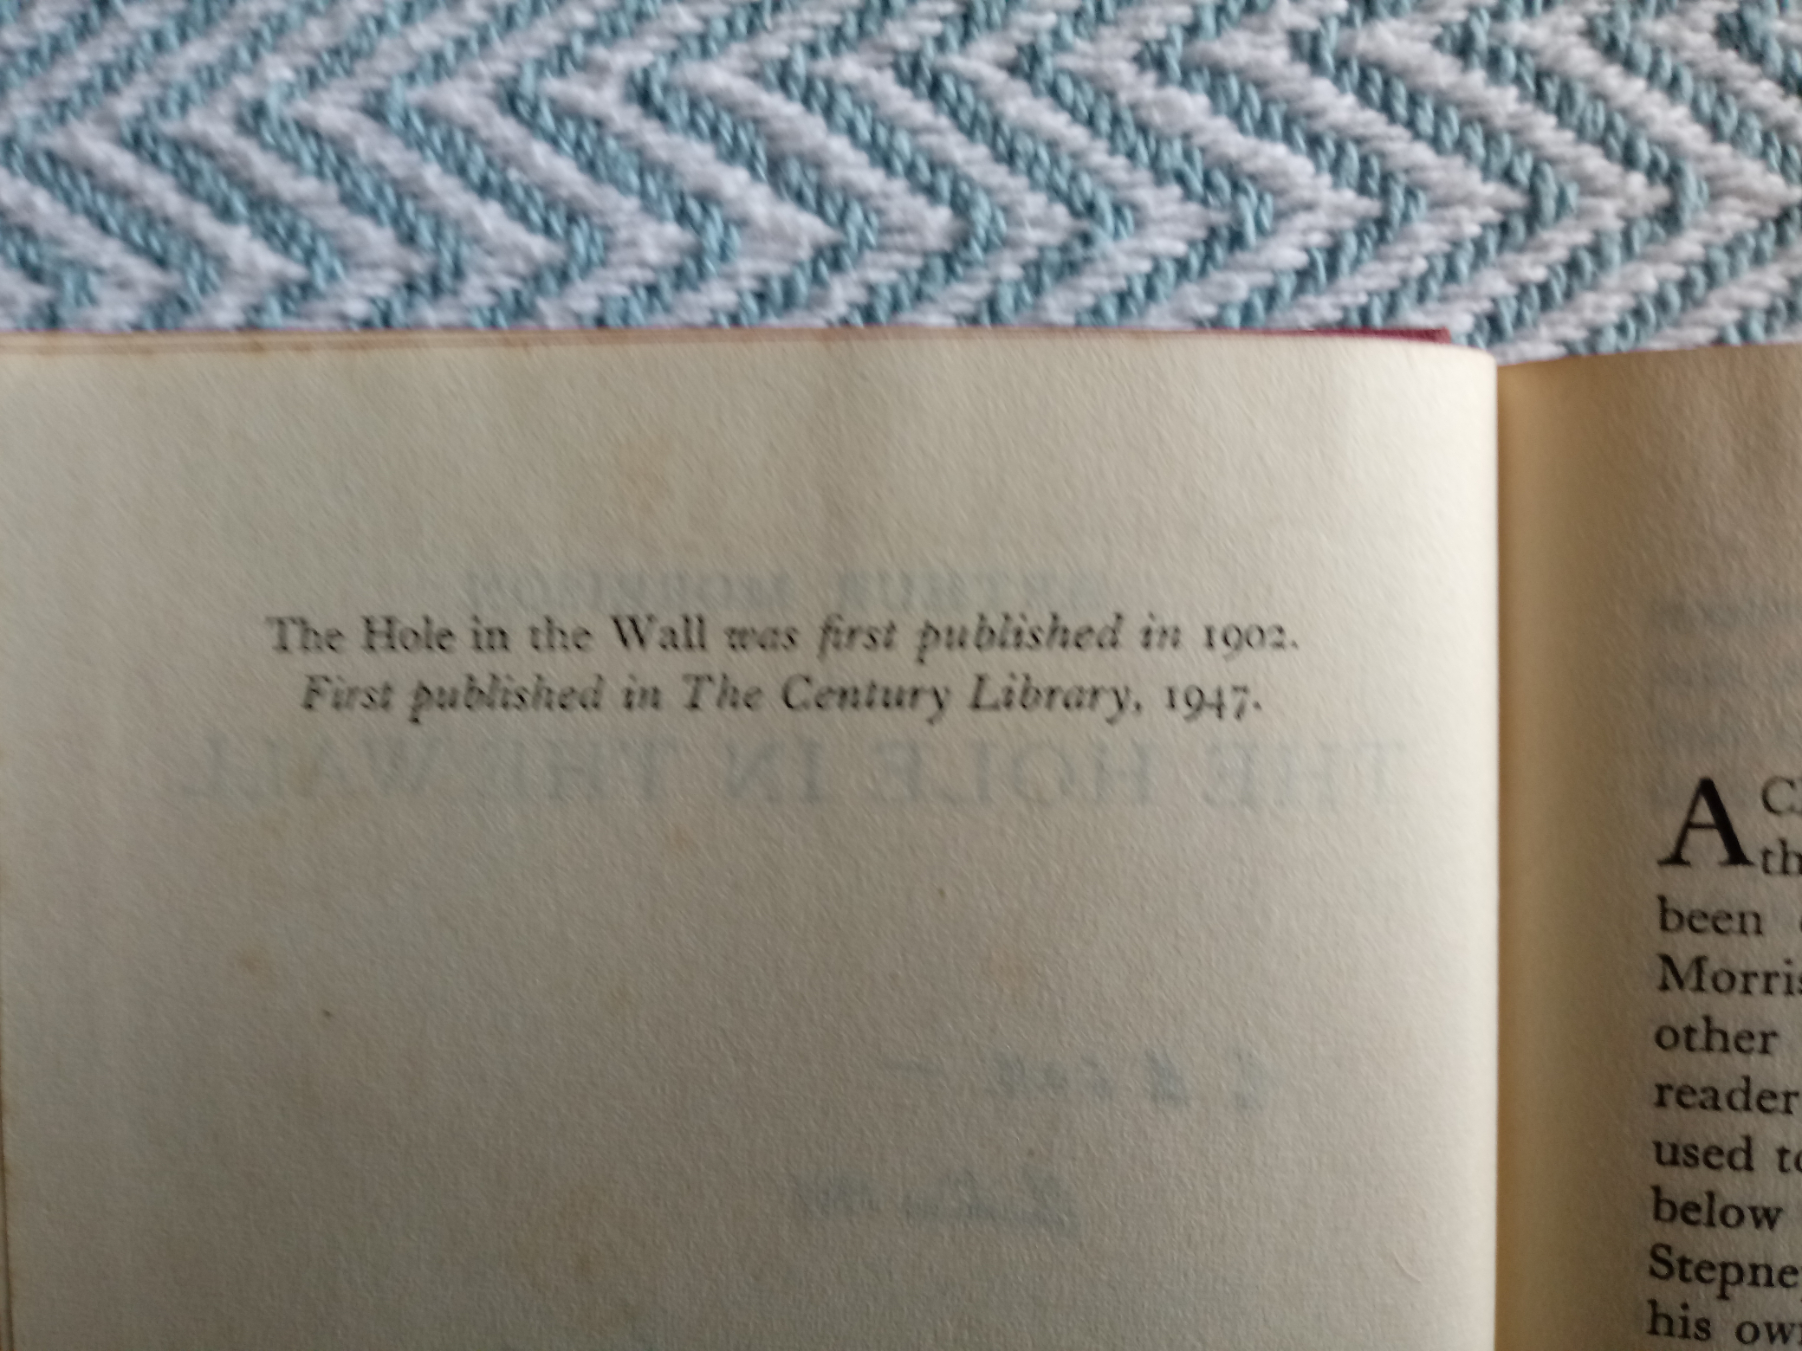 The Hole In The Wall by Arthur Morrison hardback book 223 pages inscribed on title page Published - Image 4 of 4